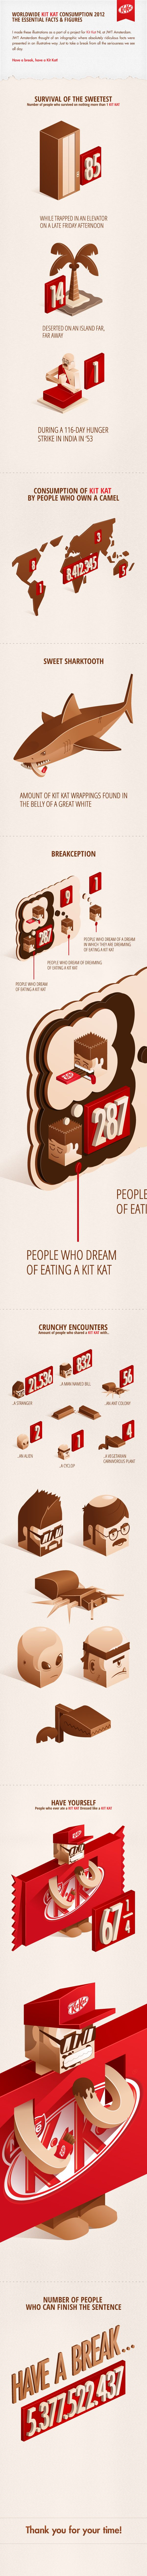 KIT KAT infographic 2012 by REFRESHH , via Behance